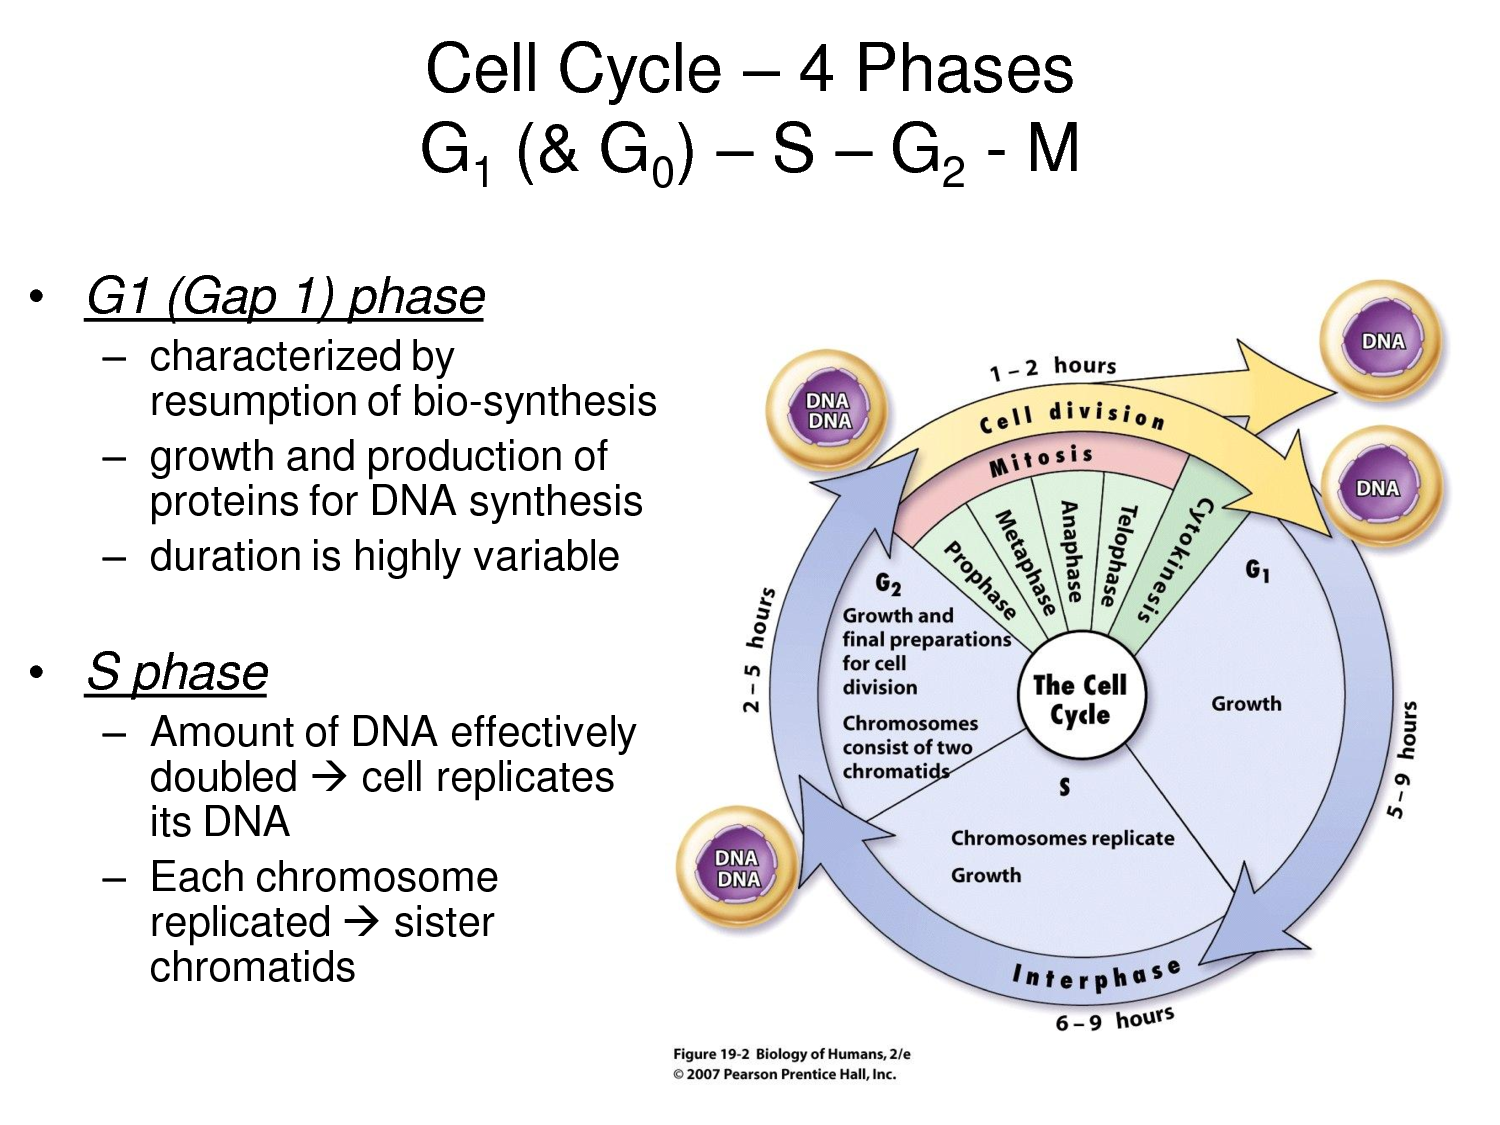 the phases of the cell cycle of humans